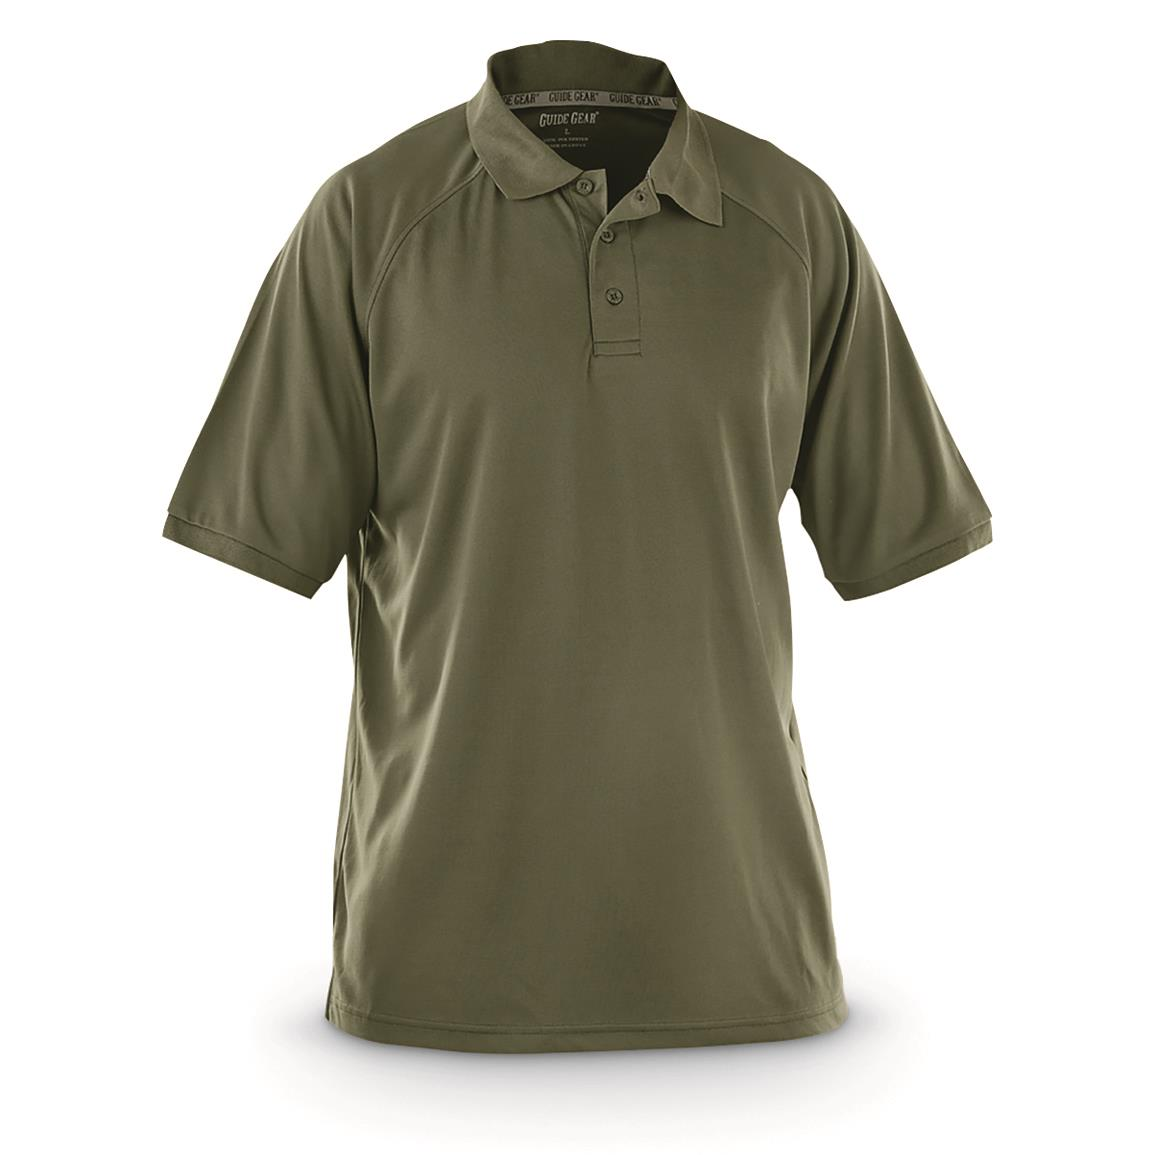 Guide Gear Men's Performance Short Sleeve Polo Shirt, Olive